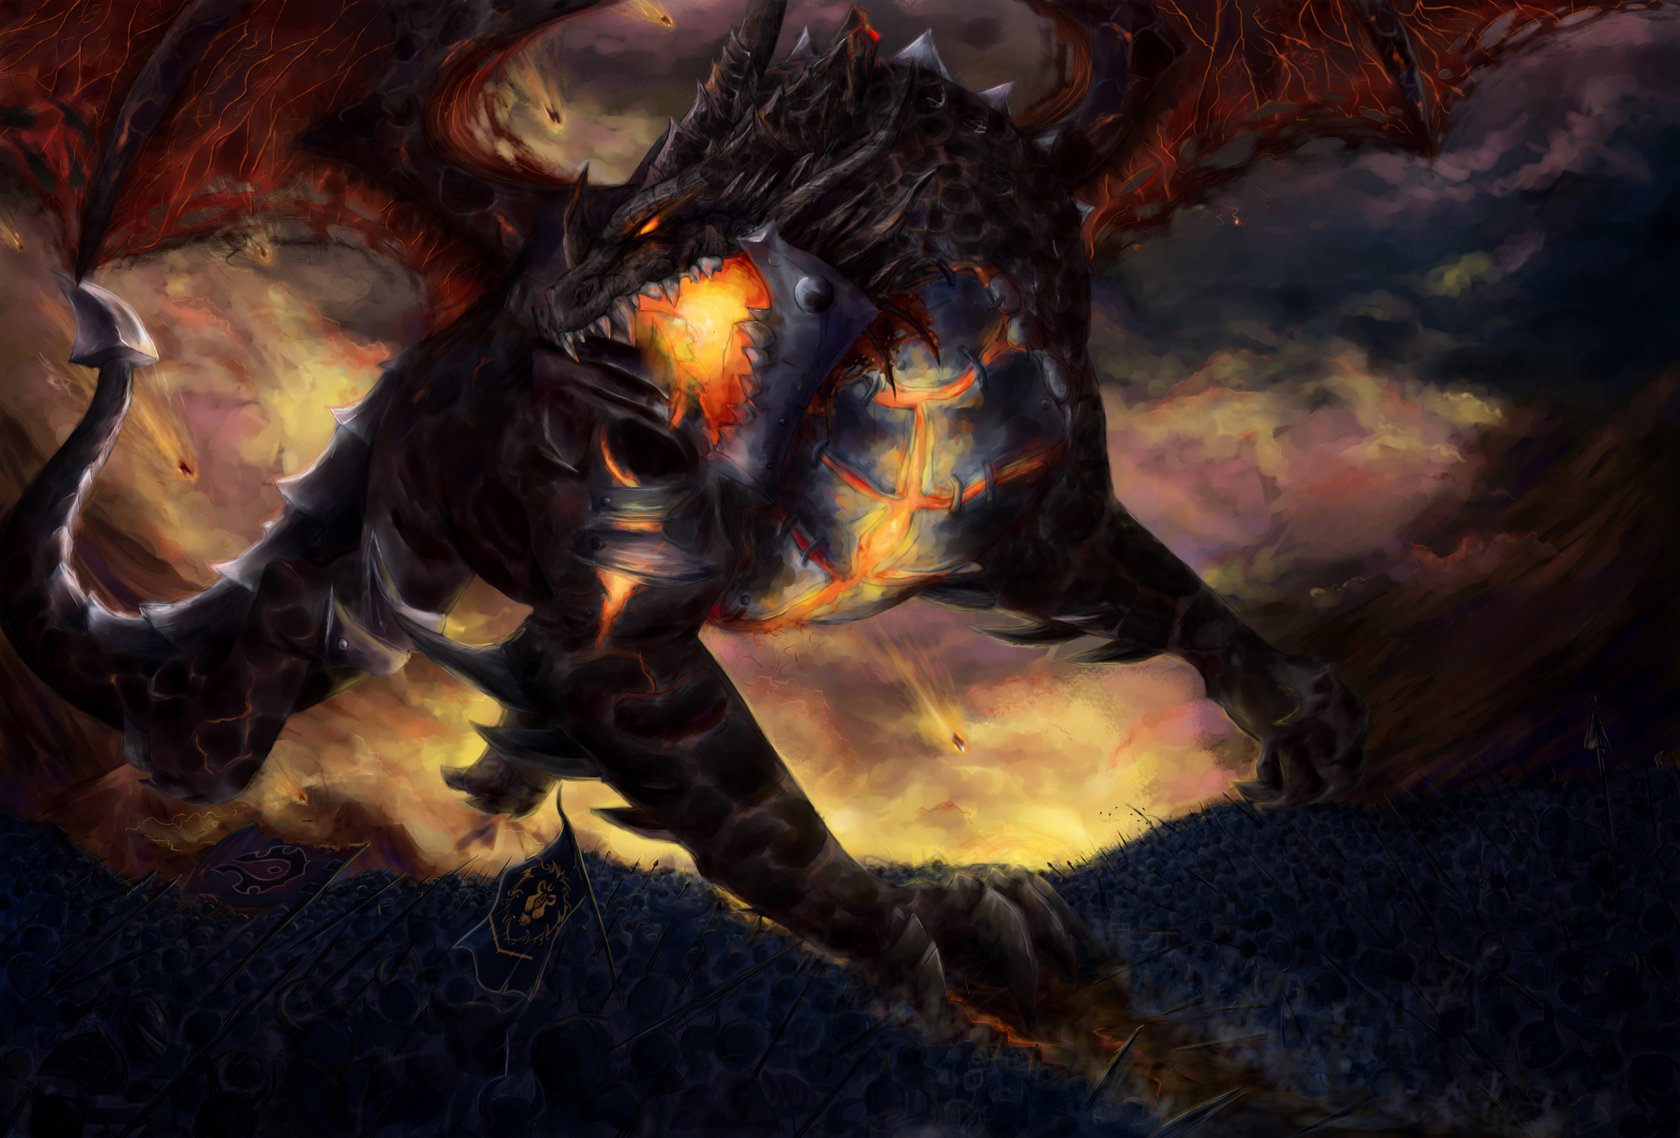 Deathwing the Destroyer by Houndourka